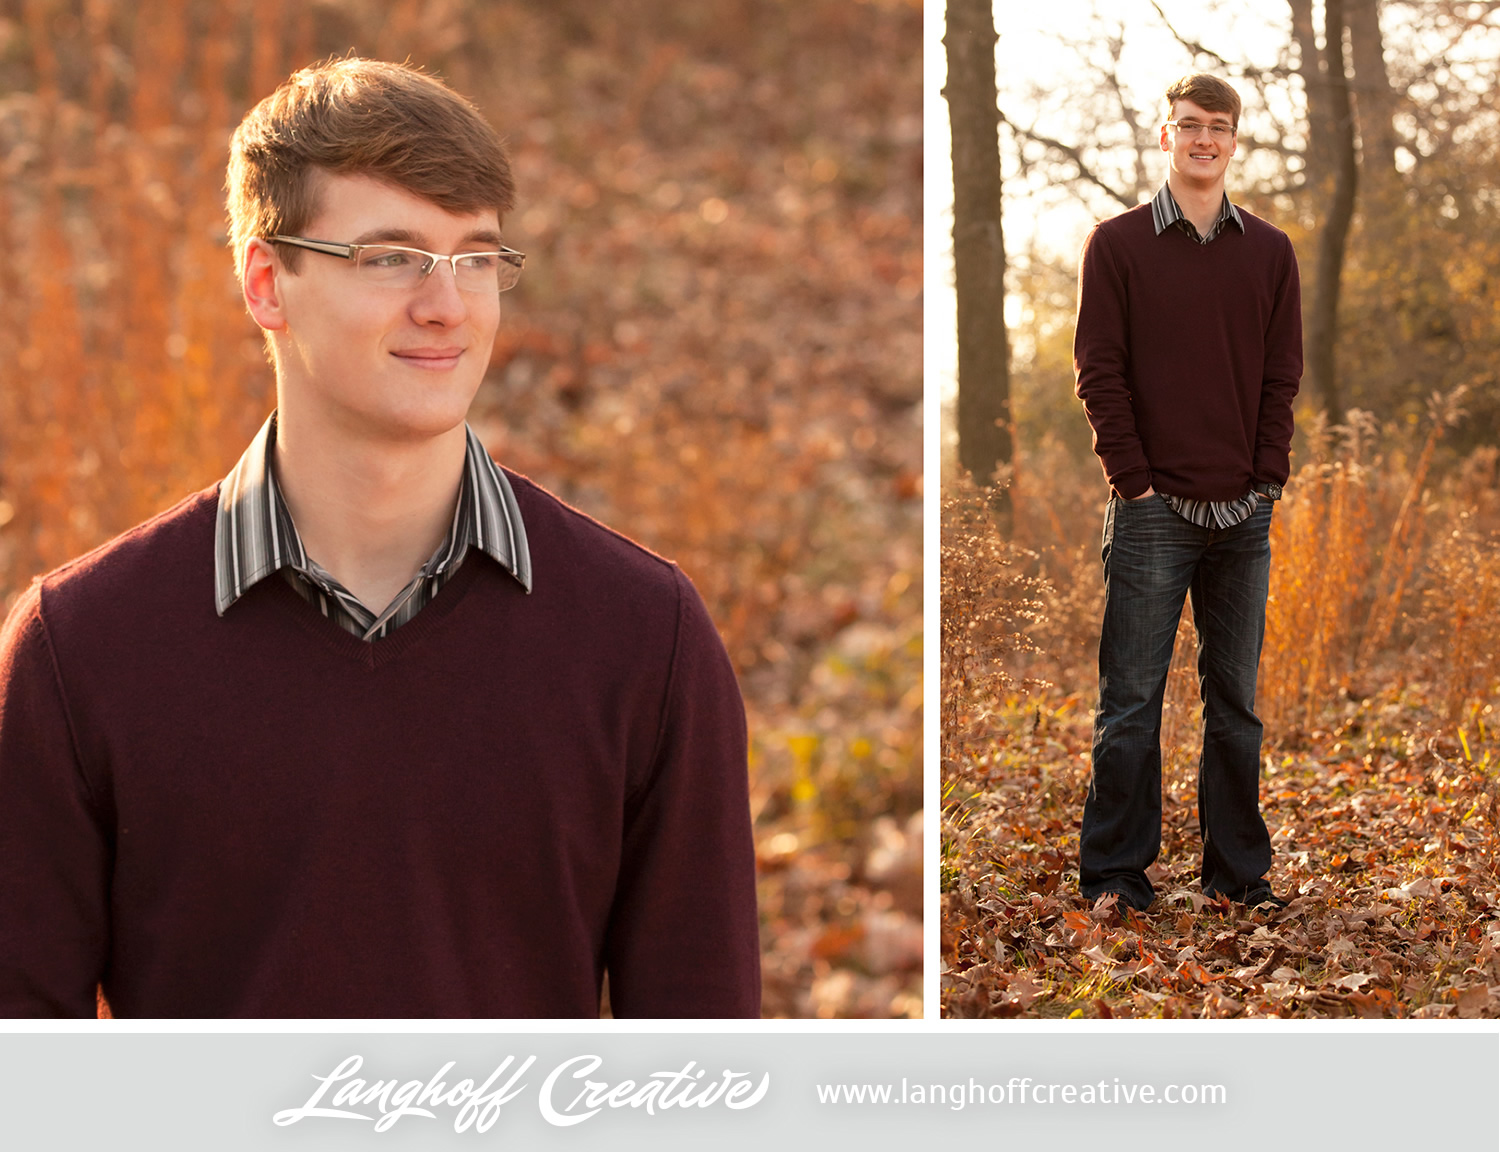 LanghoffCreative-2013RacineSeniorPortrait-Chad02-photo.jpg